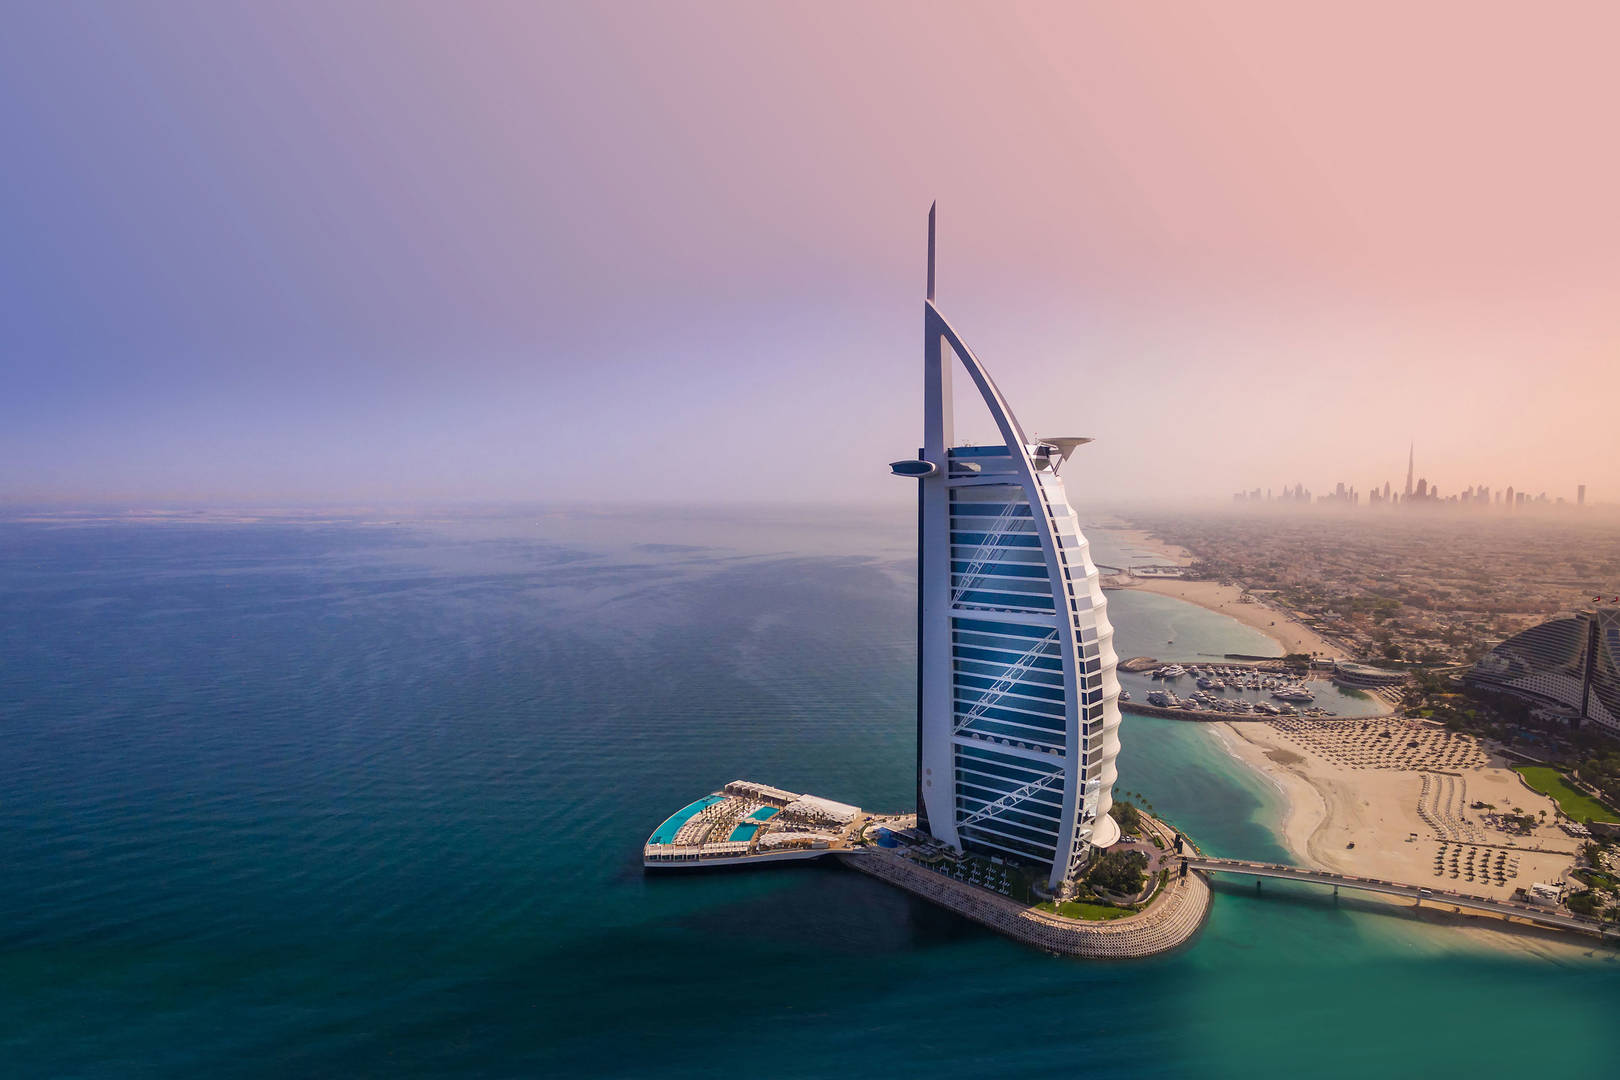 Aerial view of the Burj Al Arab at dusk